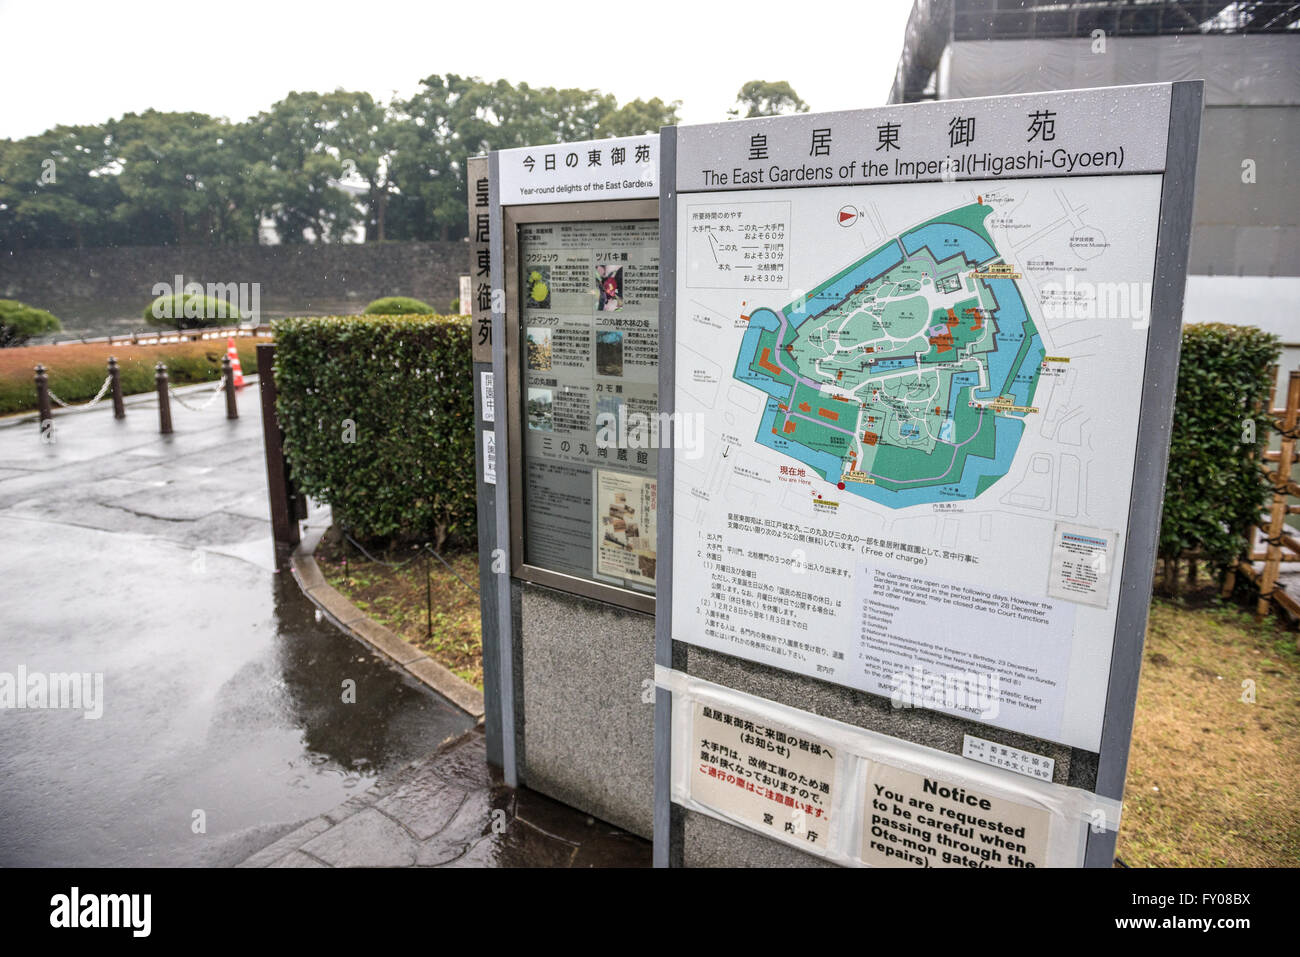 East Gardens of the Imperial Palace map